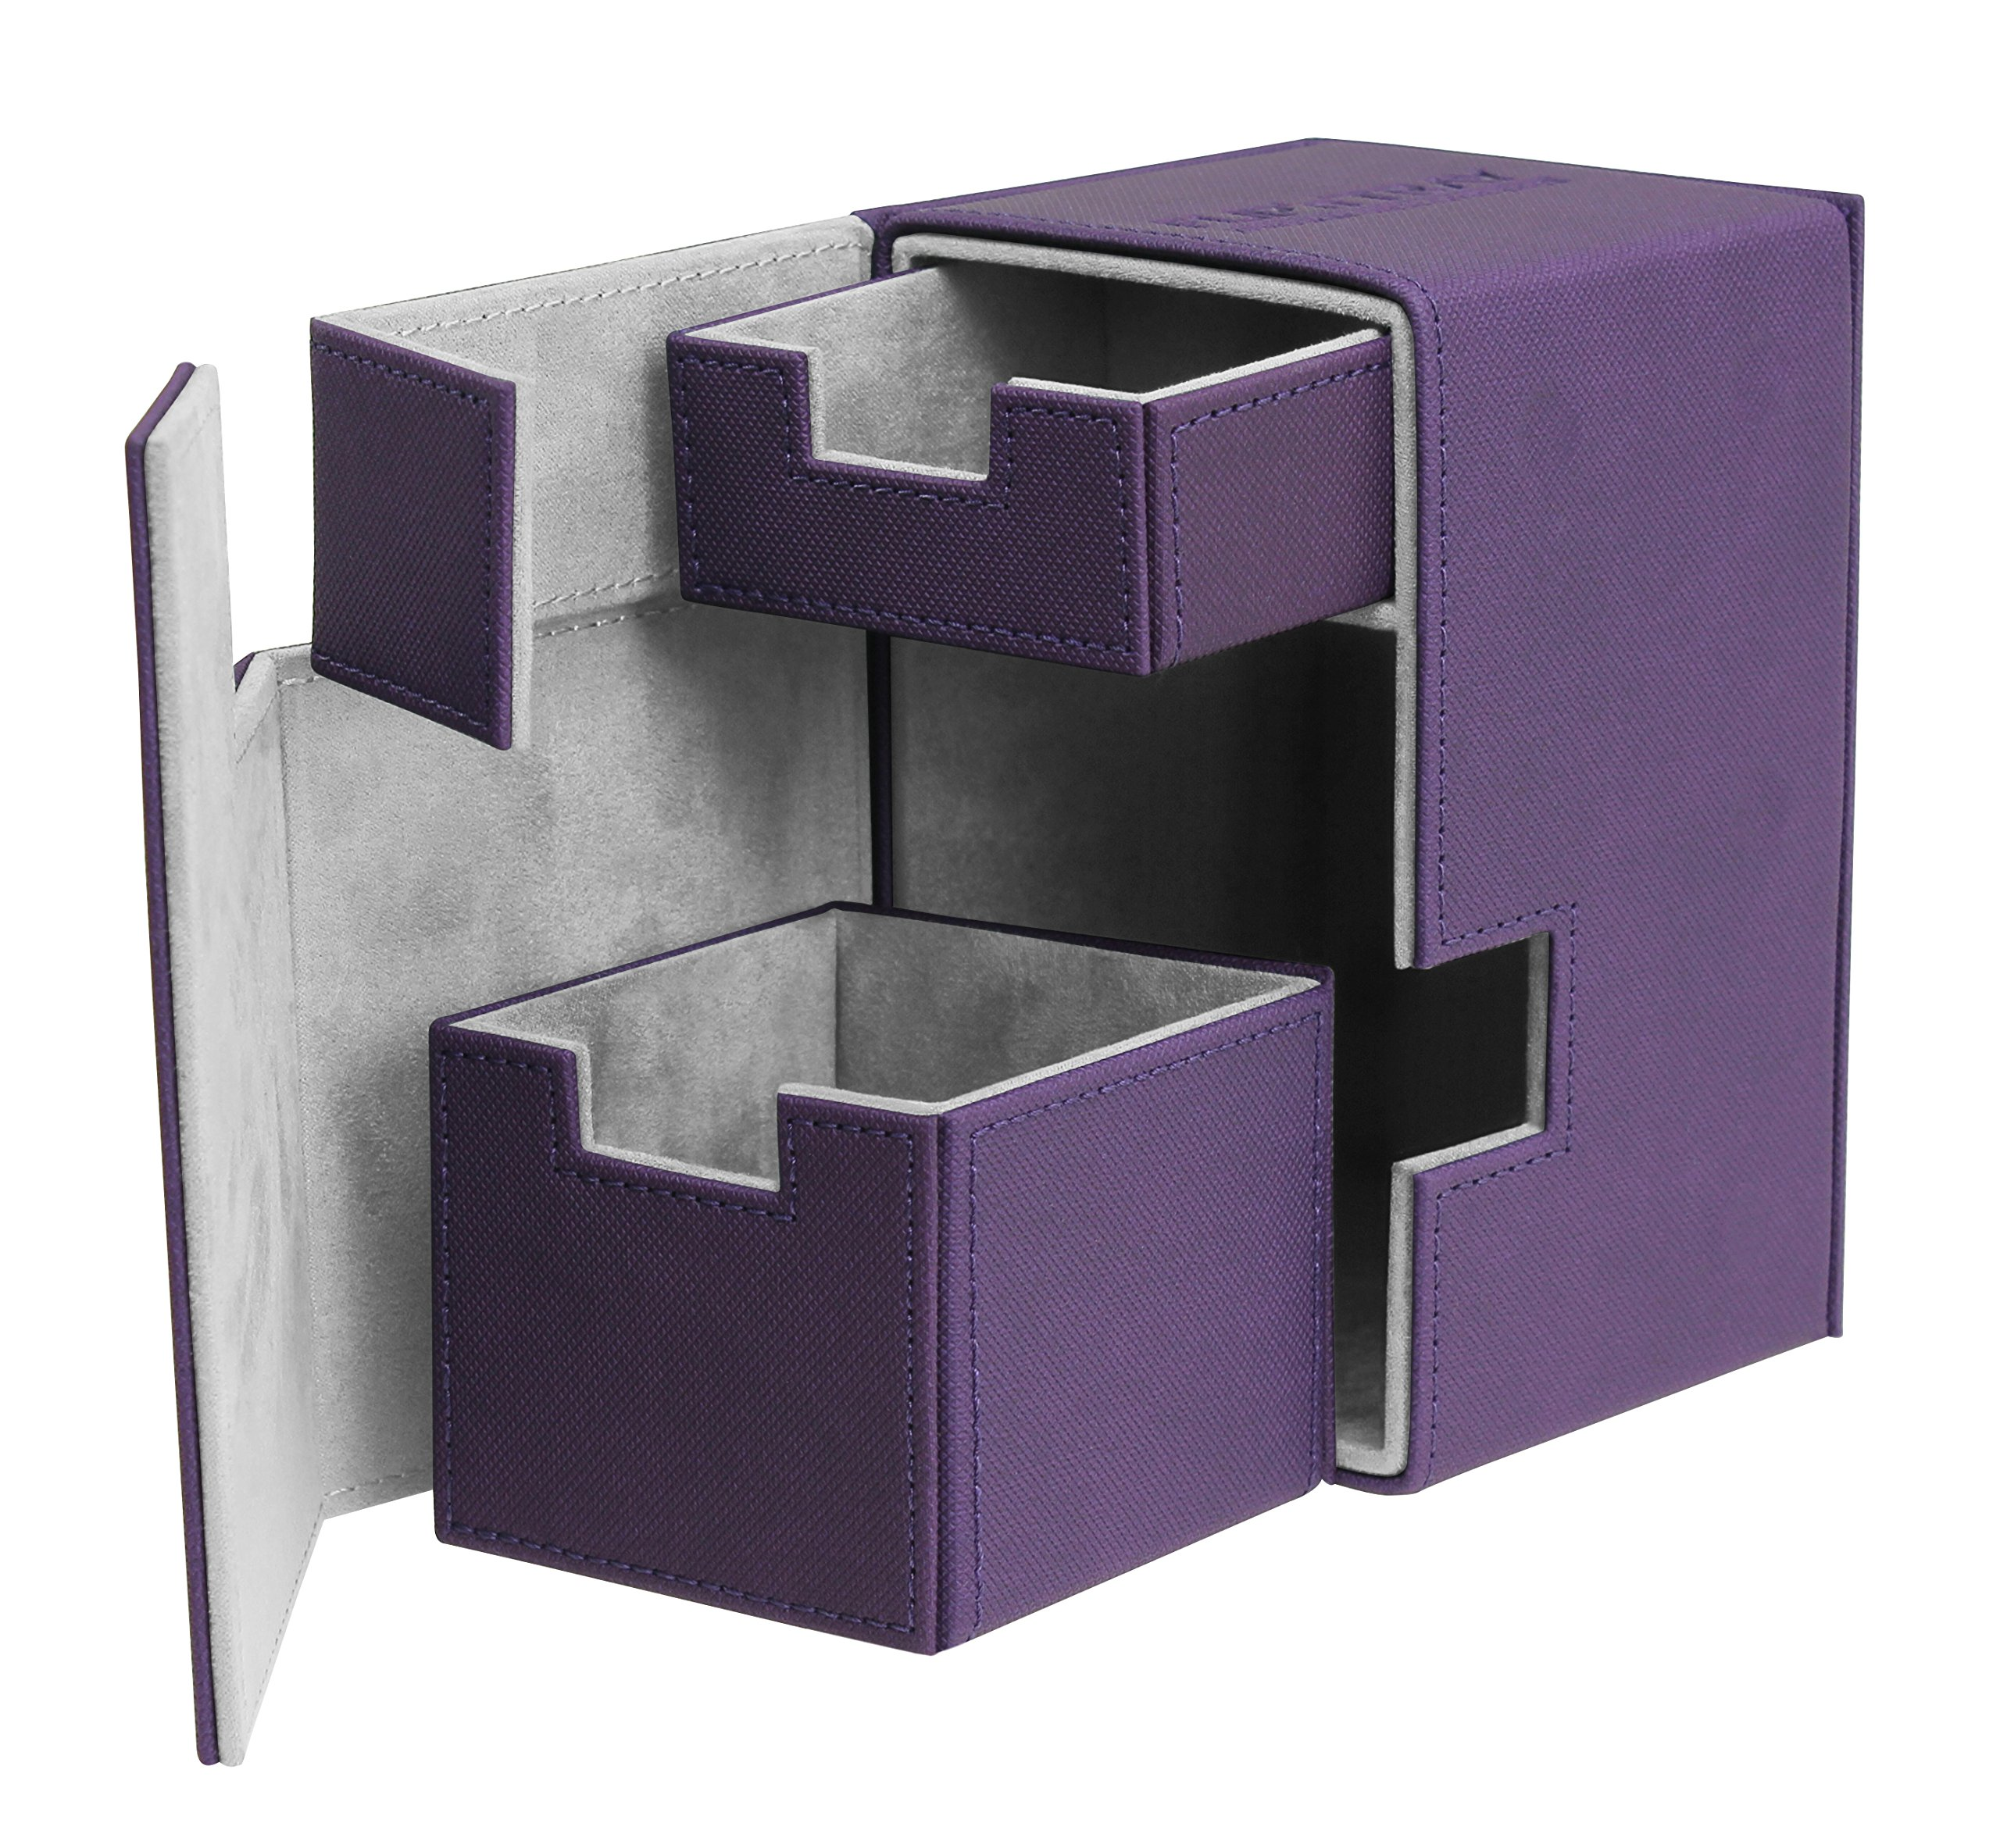 Ultimate Guard 100+ Flip n Tray XenoSkin Deck & Dice Case Protector Purple by Ultimate Guard